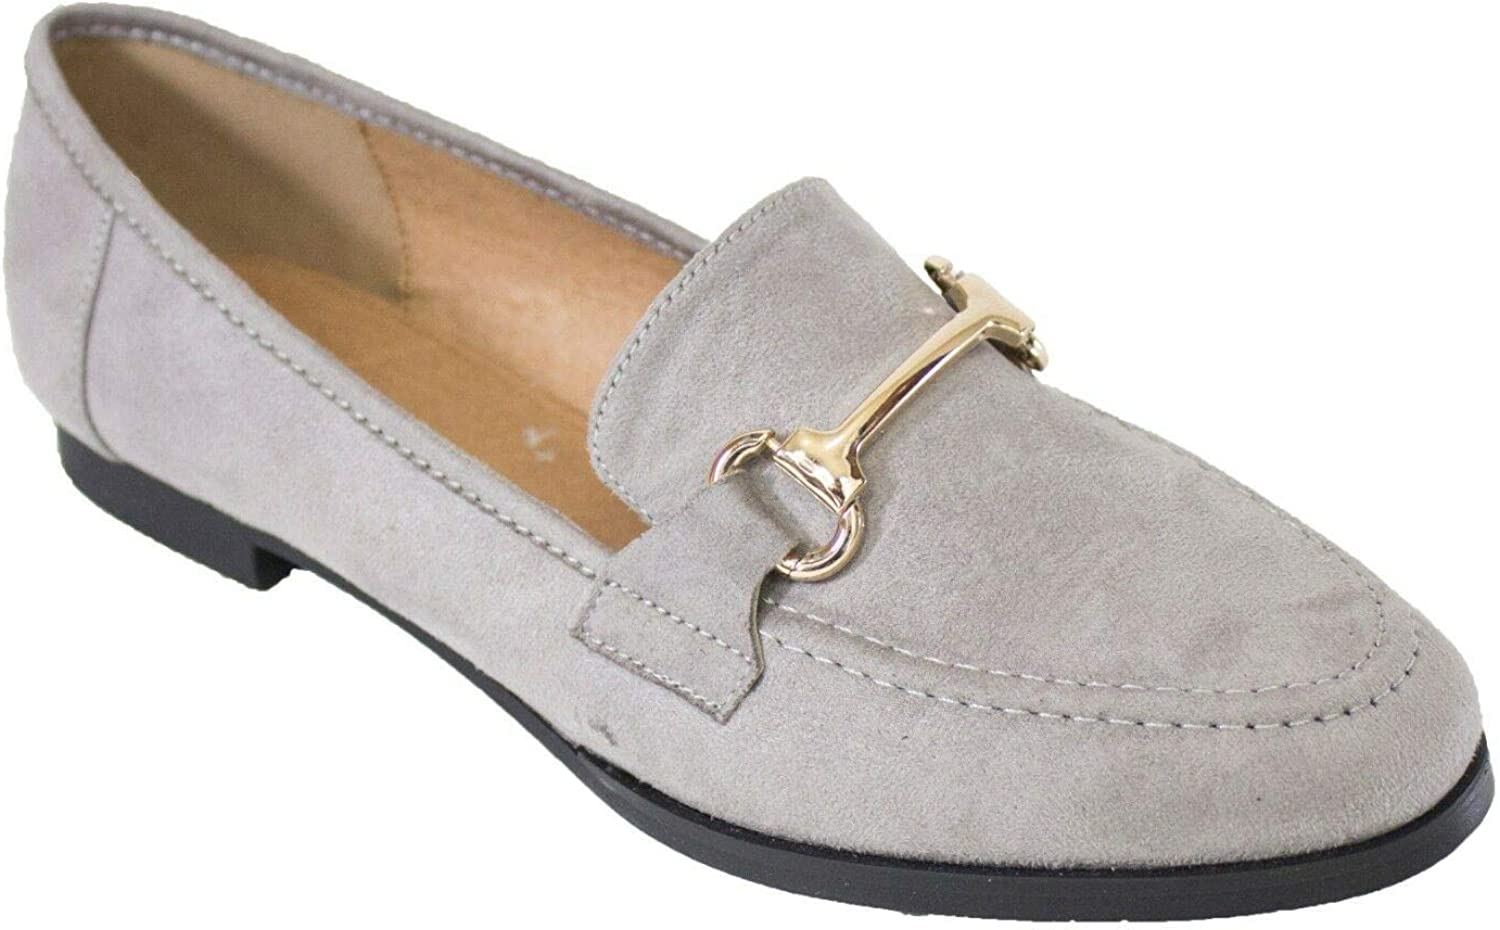 Womens Loafers Brogues Flat Shoes Snake